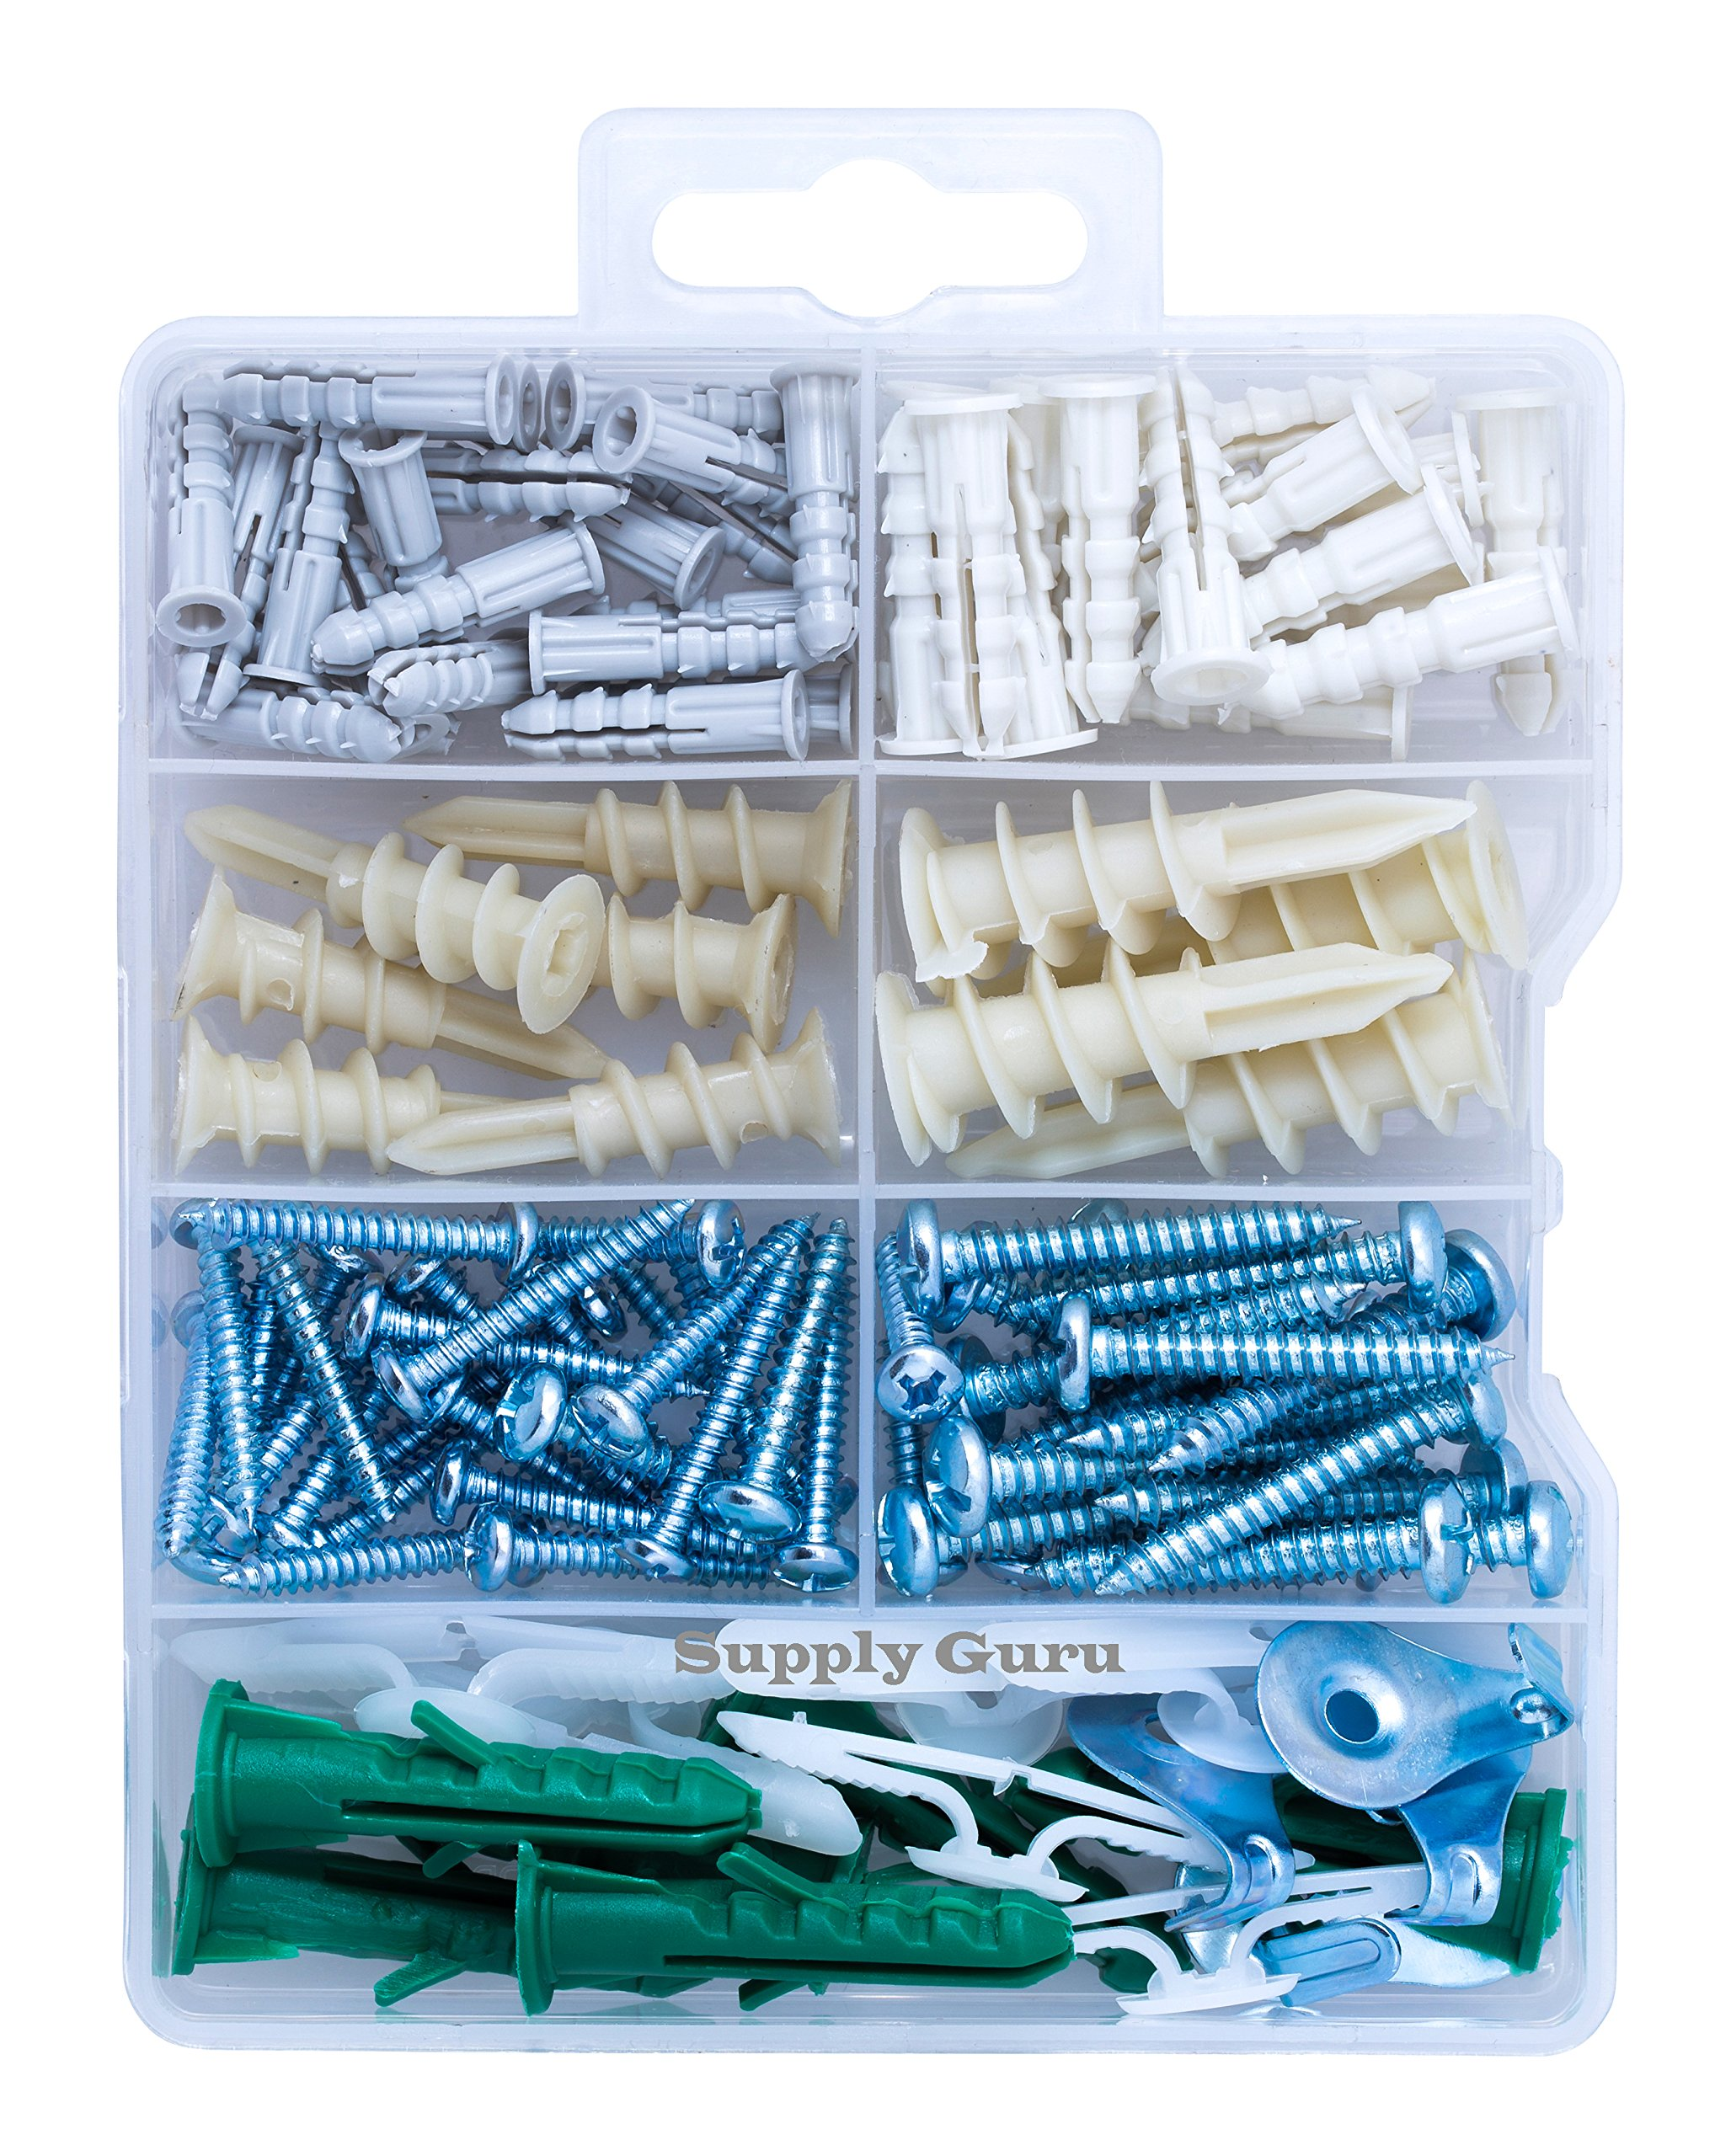 Drywall Anchor and Screw Assortment Kit, Hollow-Door Anchor, Toggle Bolt Wings, Phillips or Slotted Pan Head Screws, Picture Hangers, High Value (112-Pack).